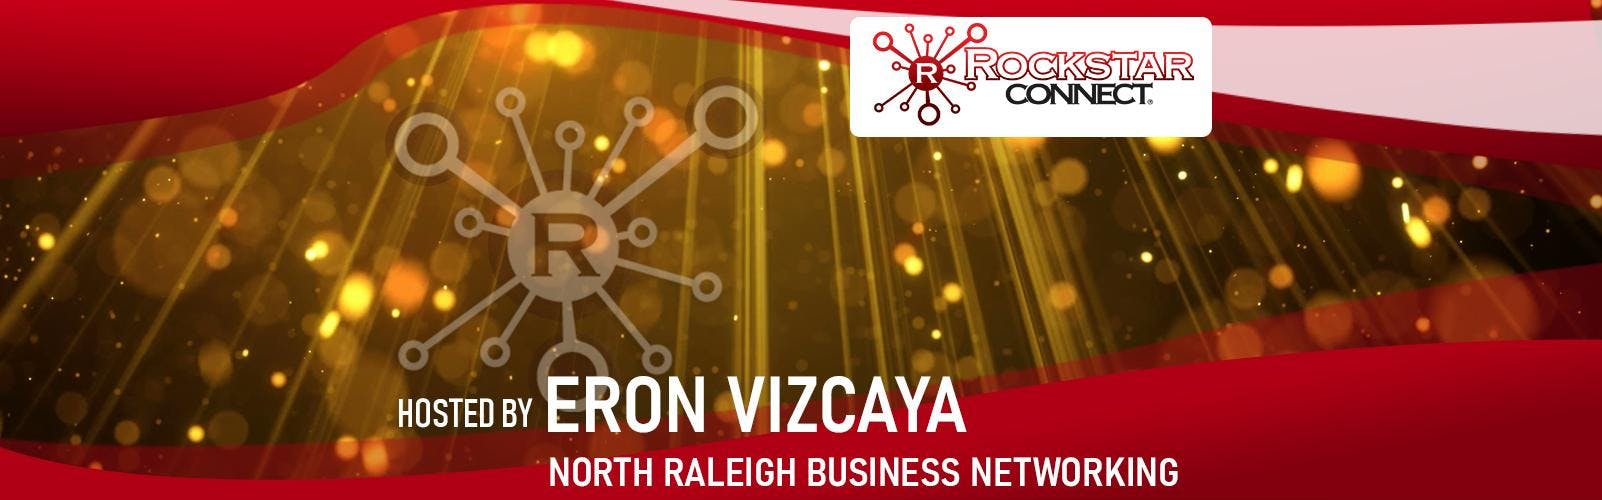 North Raleigh Business Rockstar Connect Networking Event (November, NC)